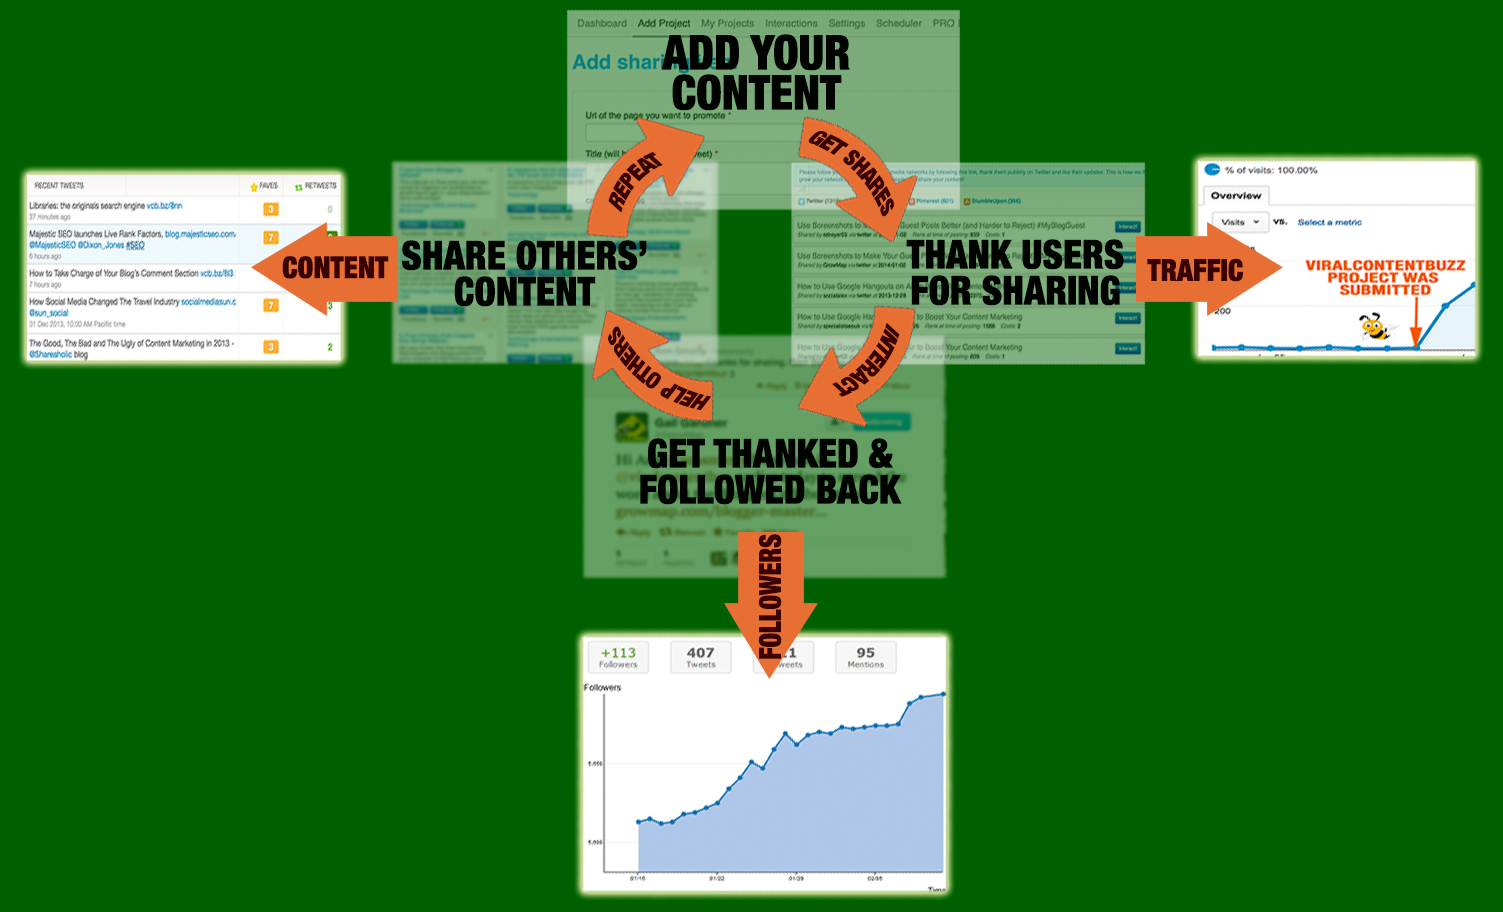 Content Marketing Cycle with Viral Content Buzz